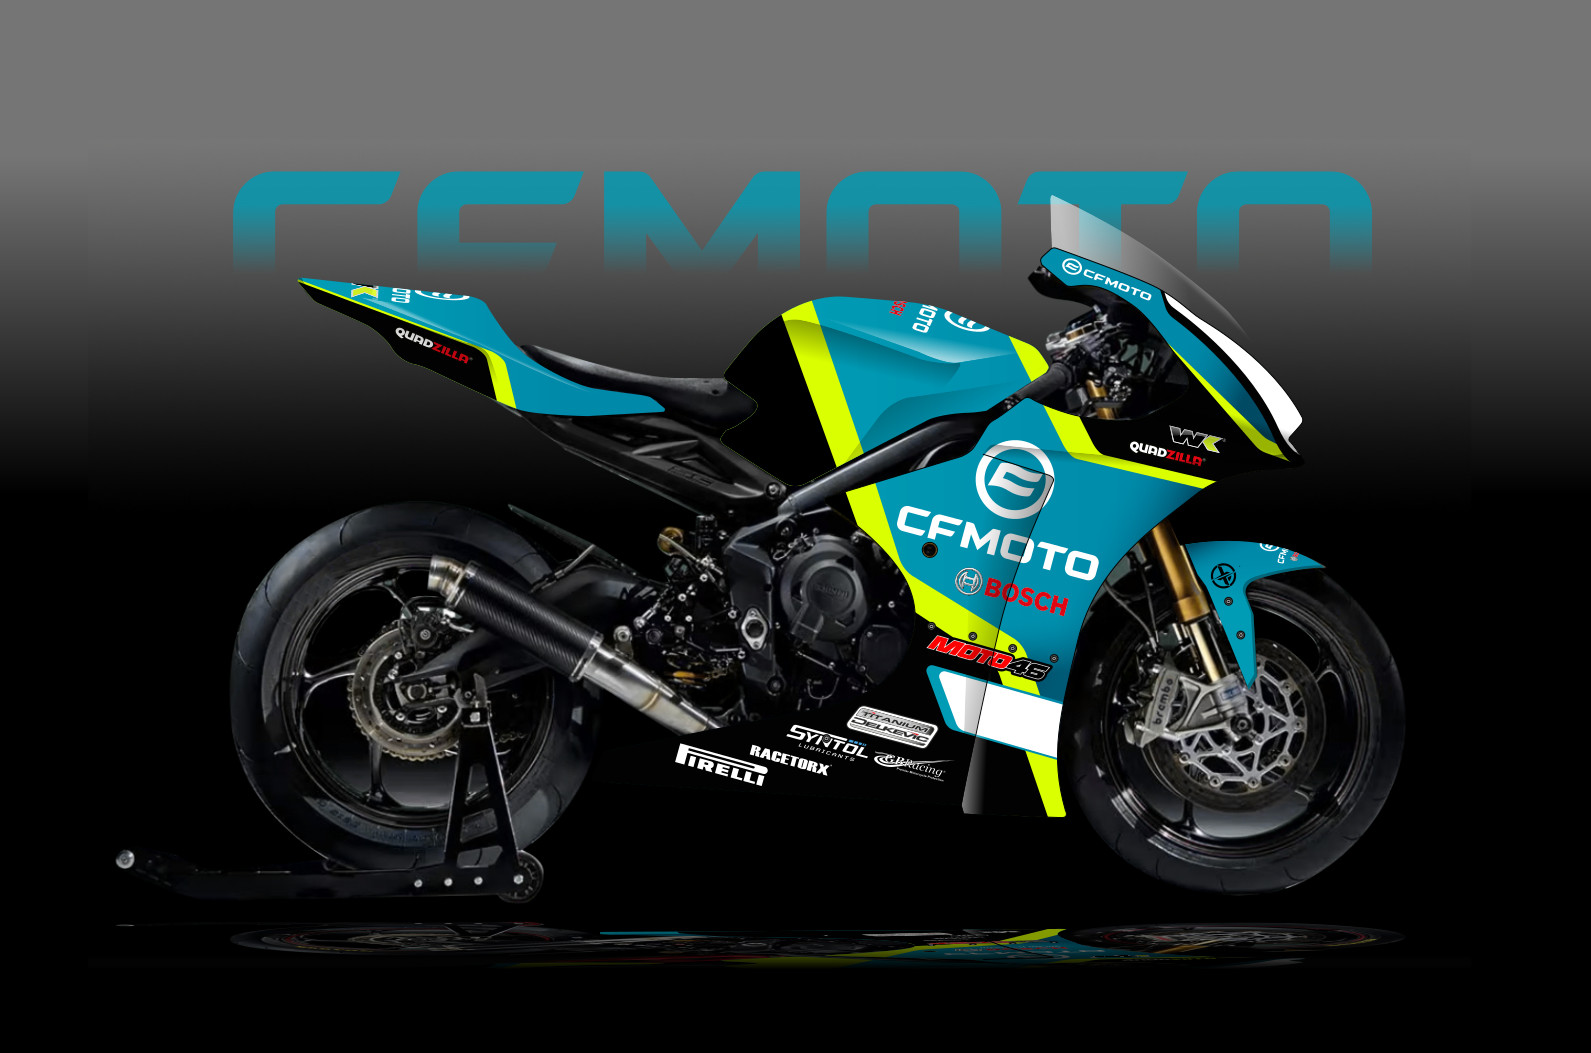 New Challenges On The Horizon For CF Moto